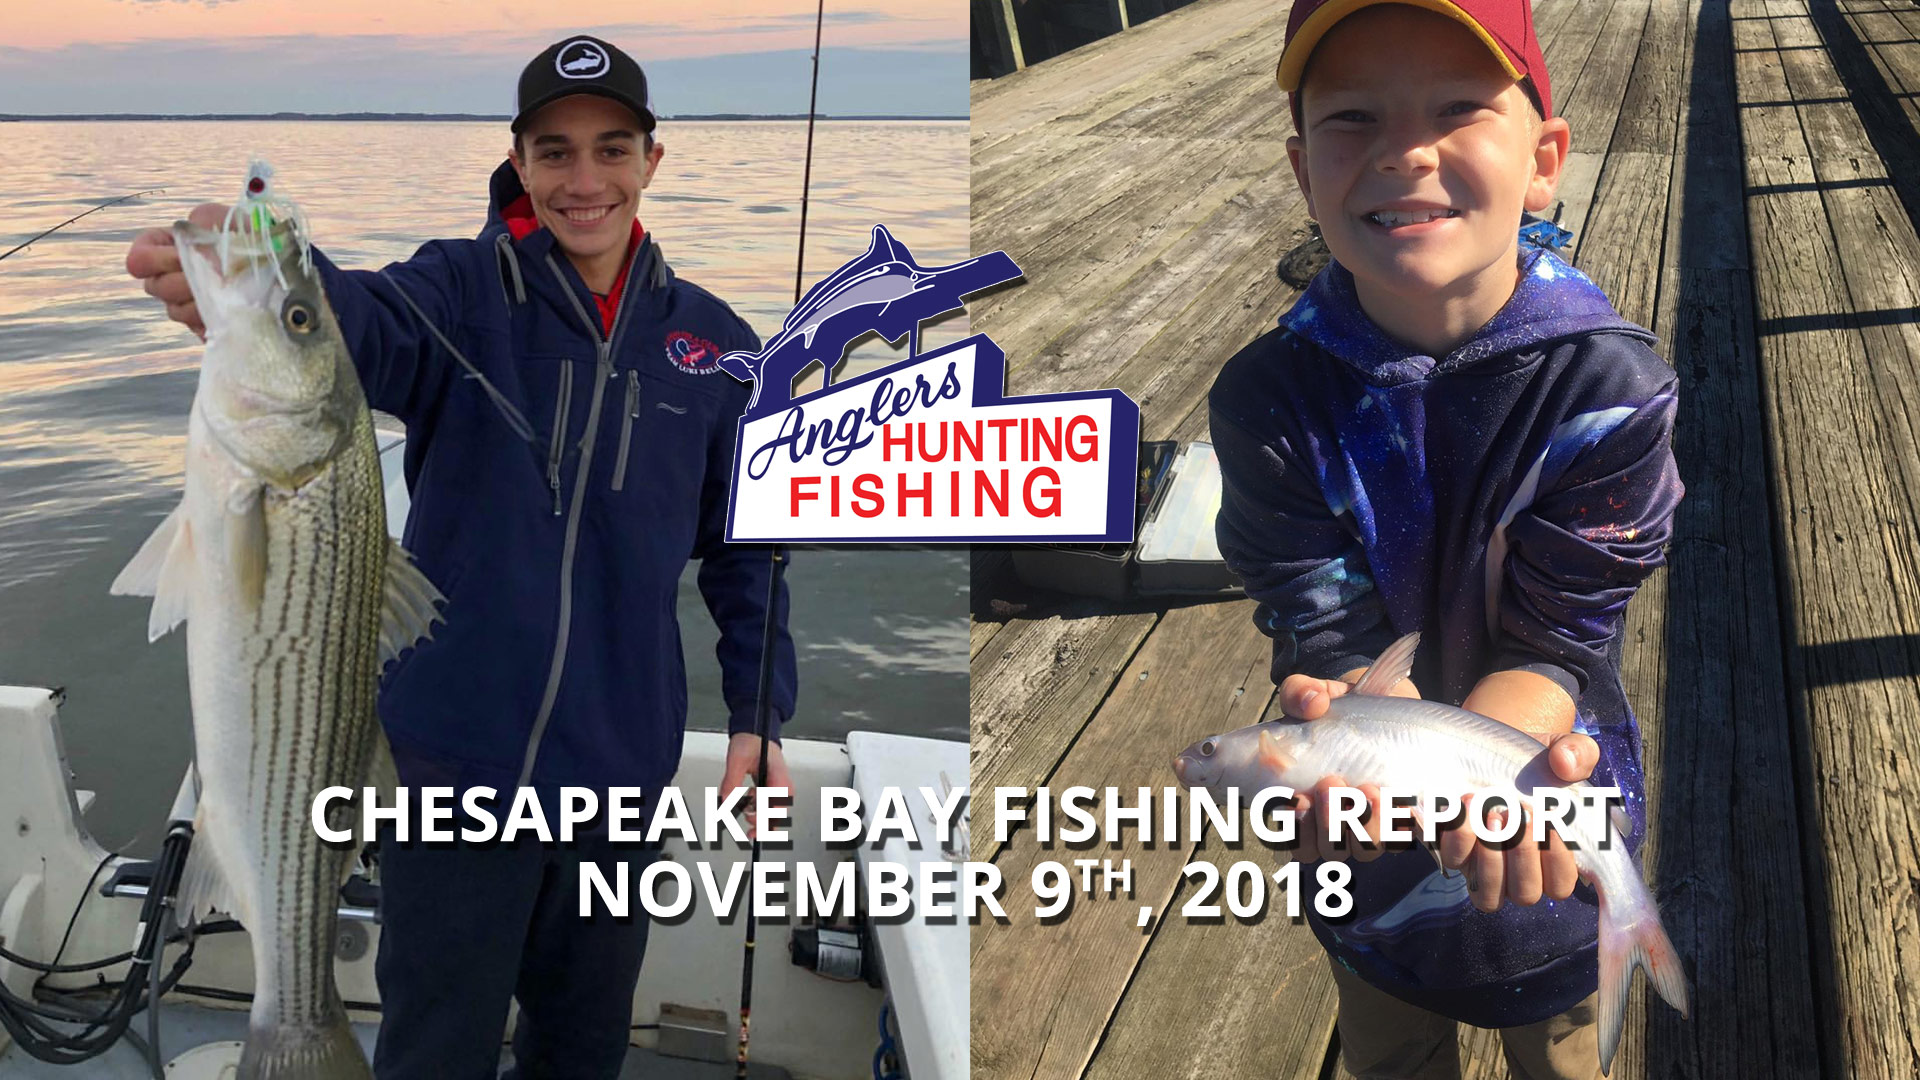 Chesapeake Bay Fishing Report - November 9th, 2018